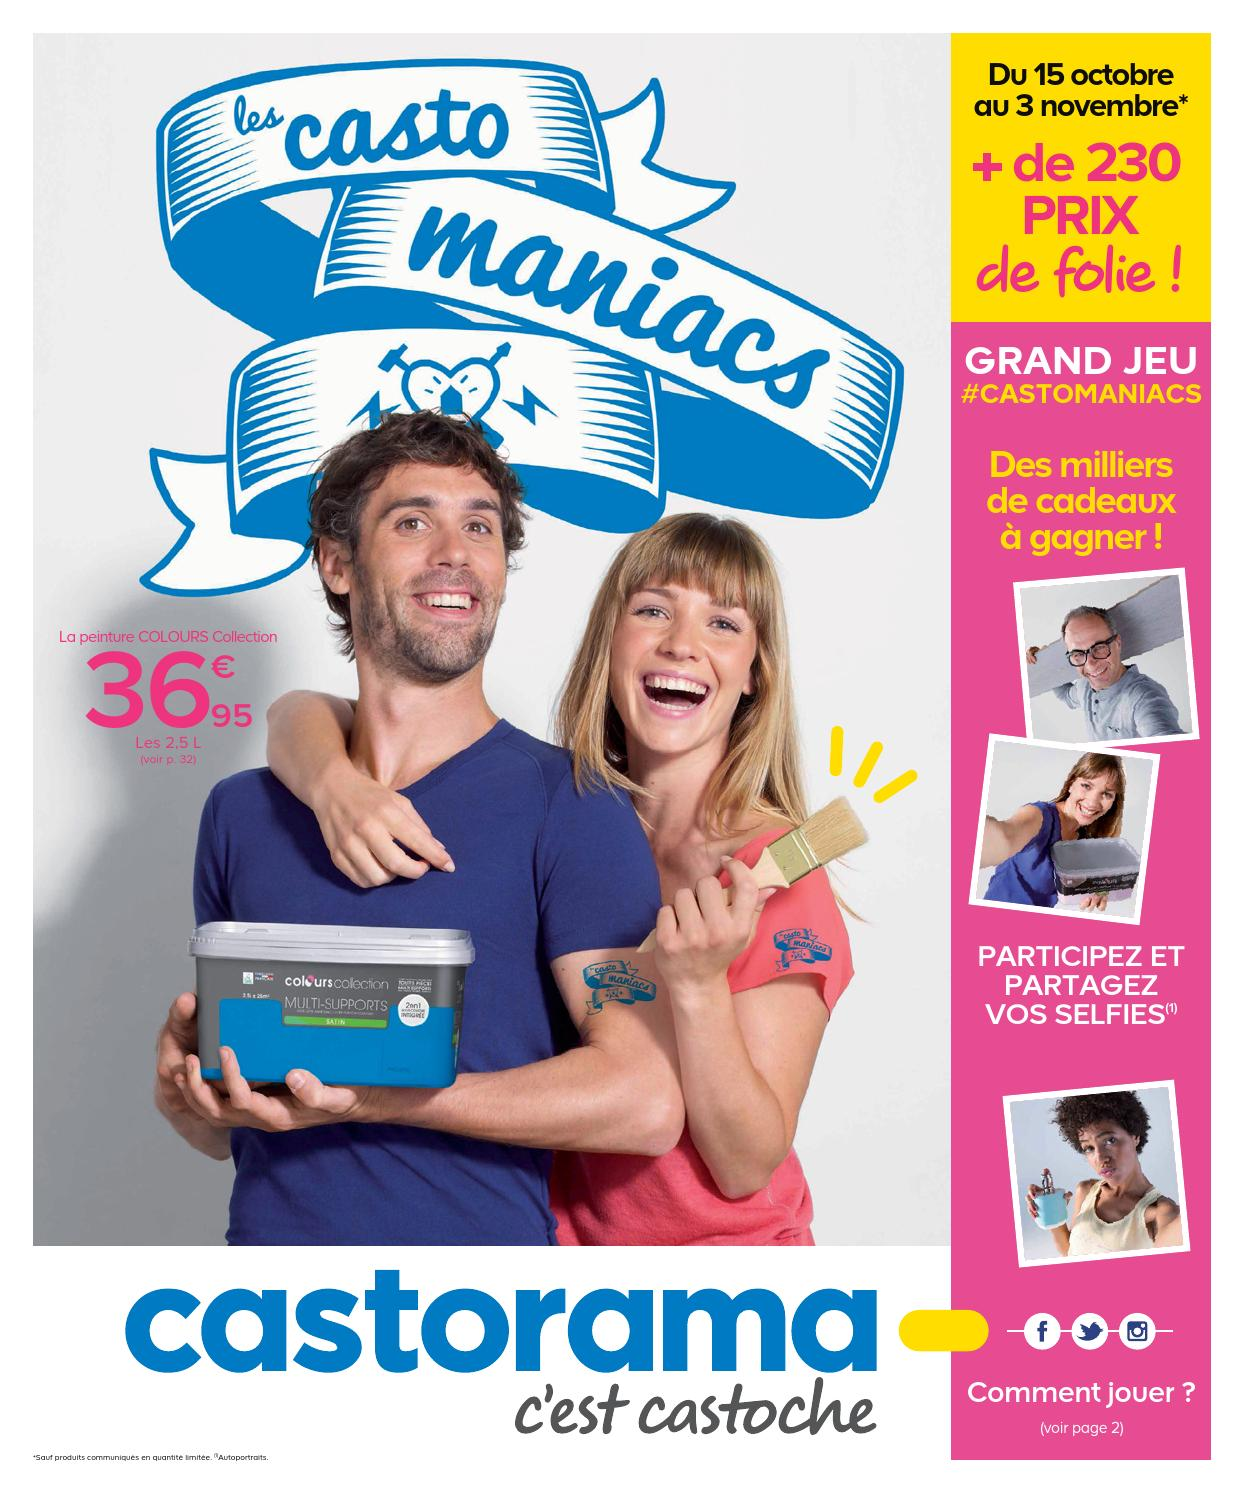 Castorama Catalogue 15octobre 3novembre2014 By Promocatalogues Com Issuu